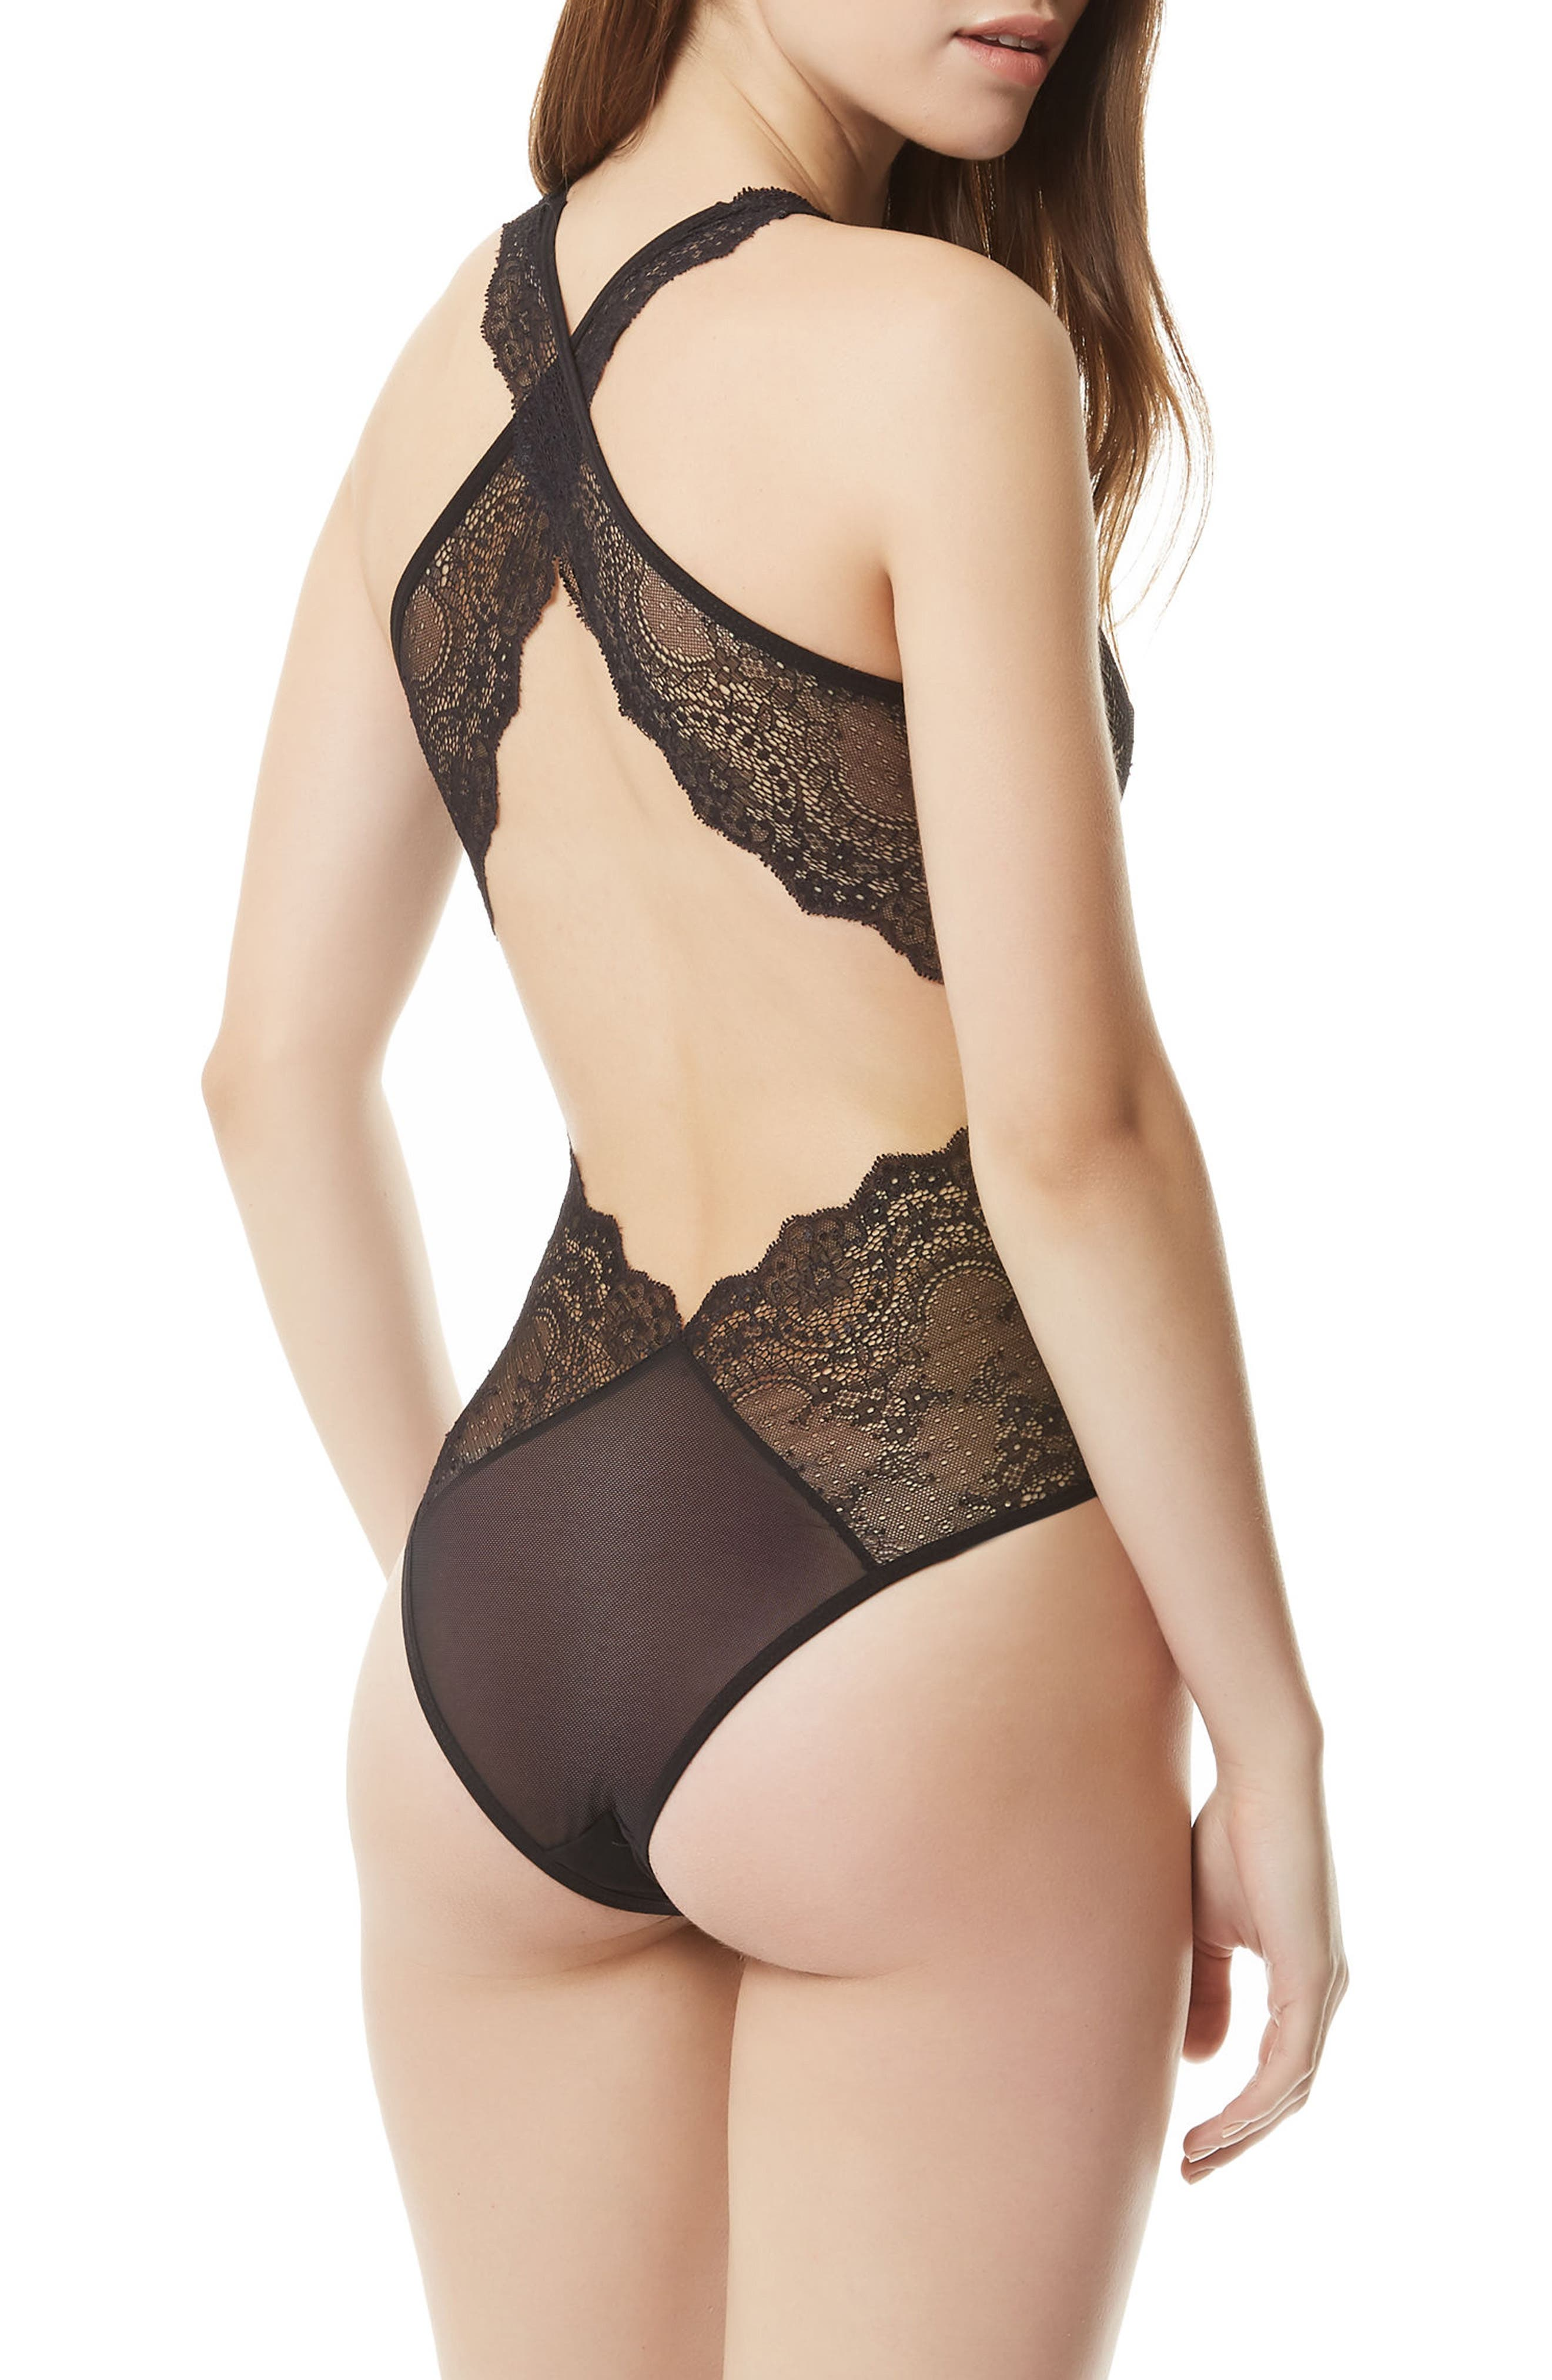 Adrienne Halter Teddy,                             Alternate thumbnail 2, color,                             001